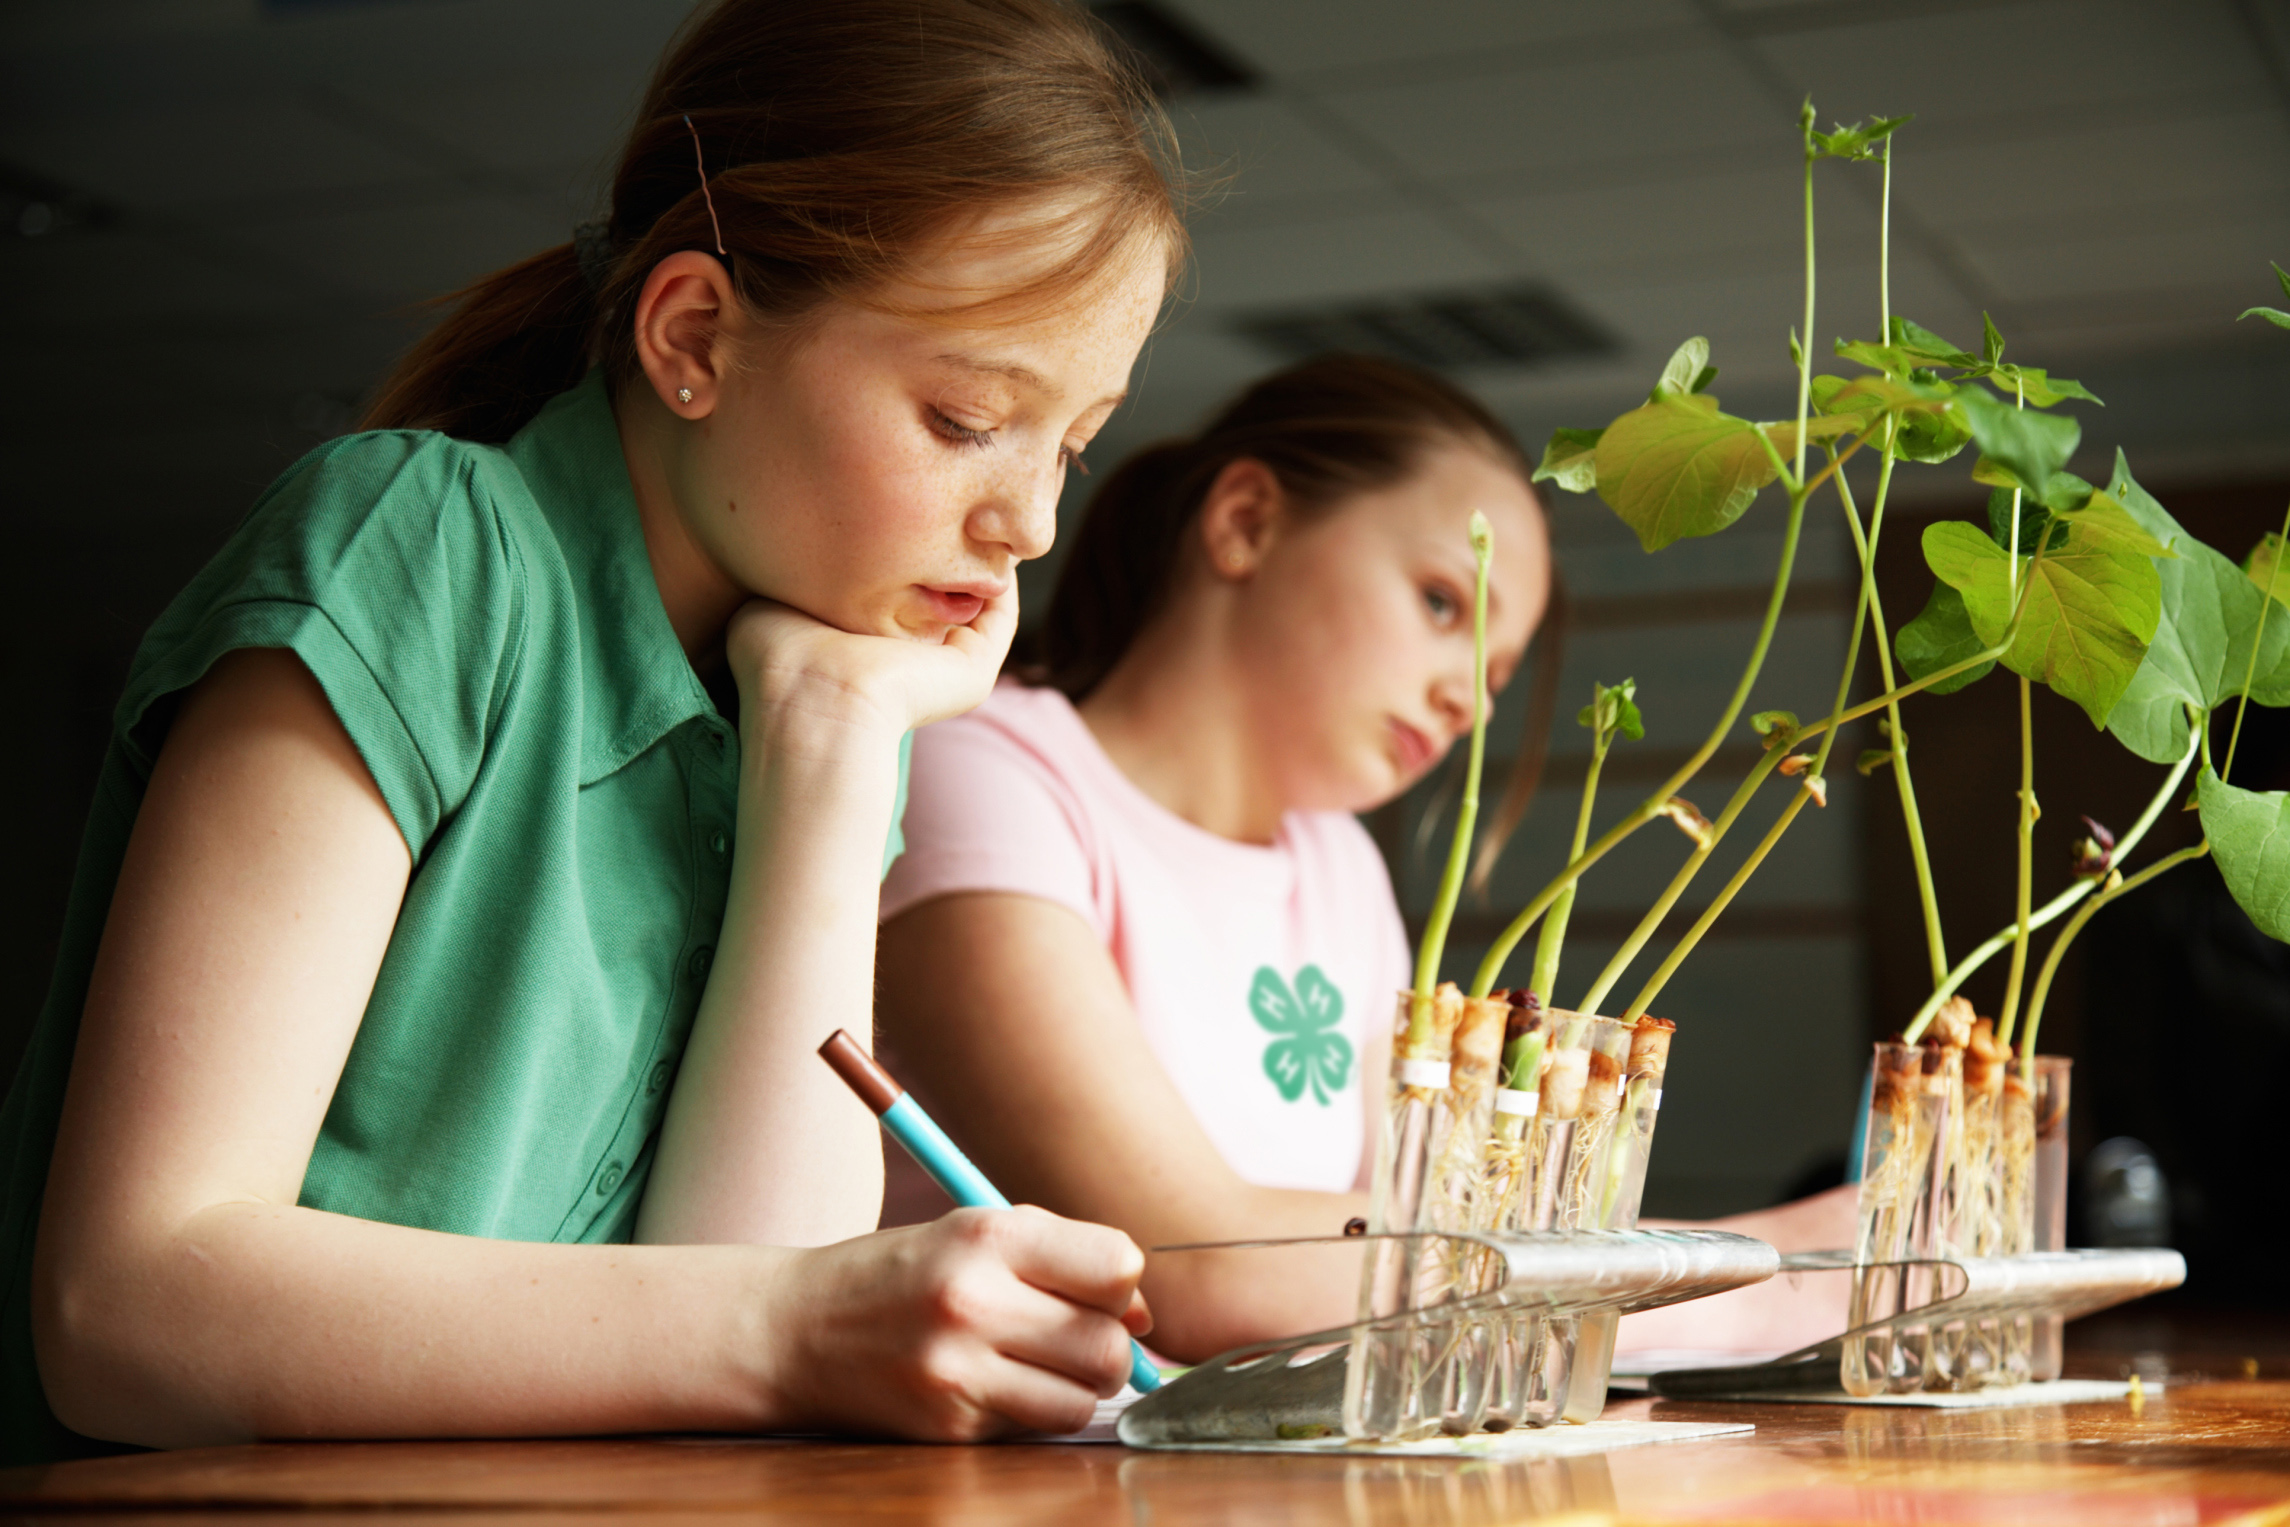 Girls working on science at school